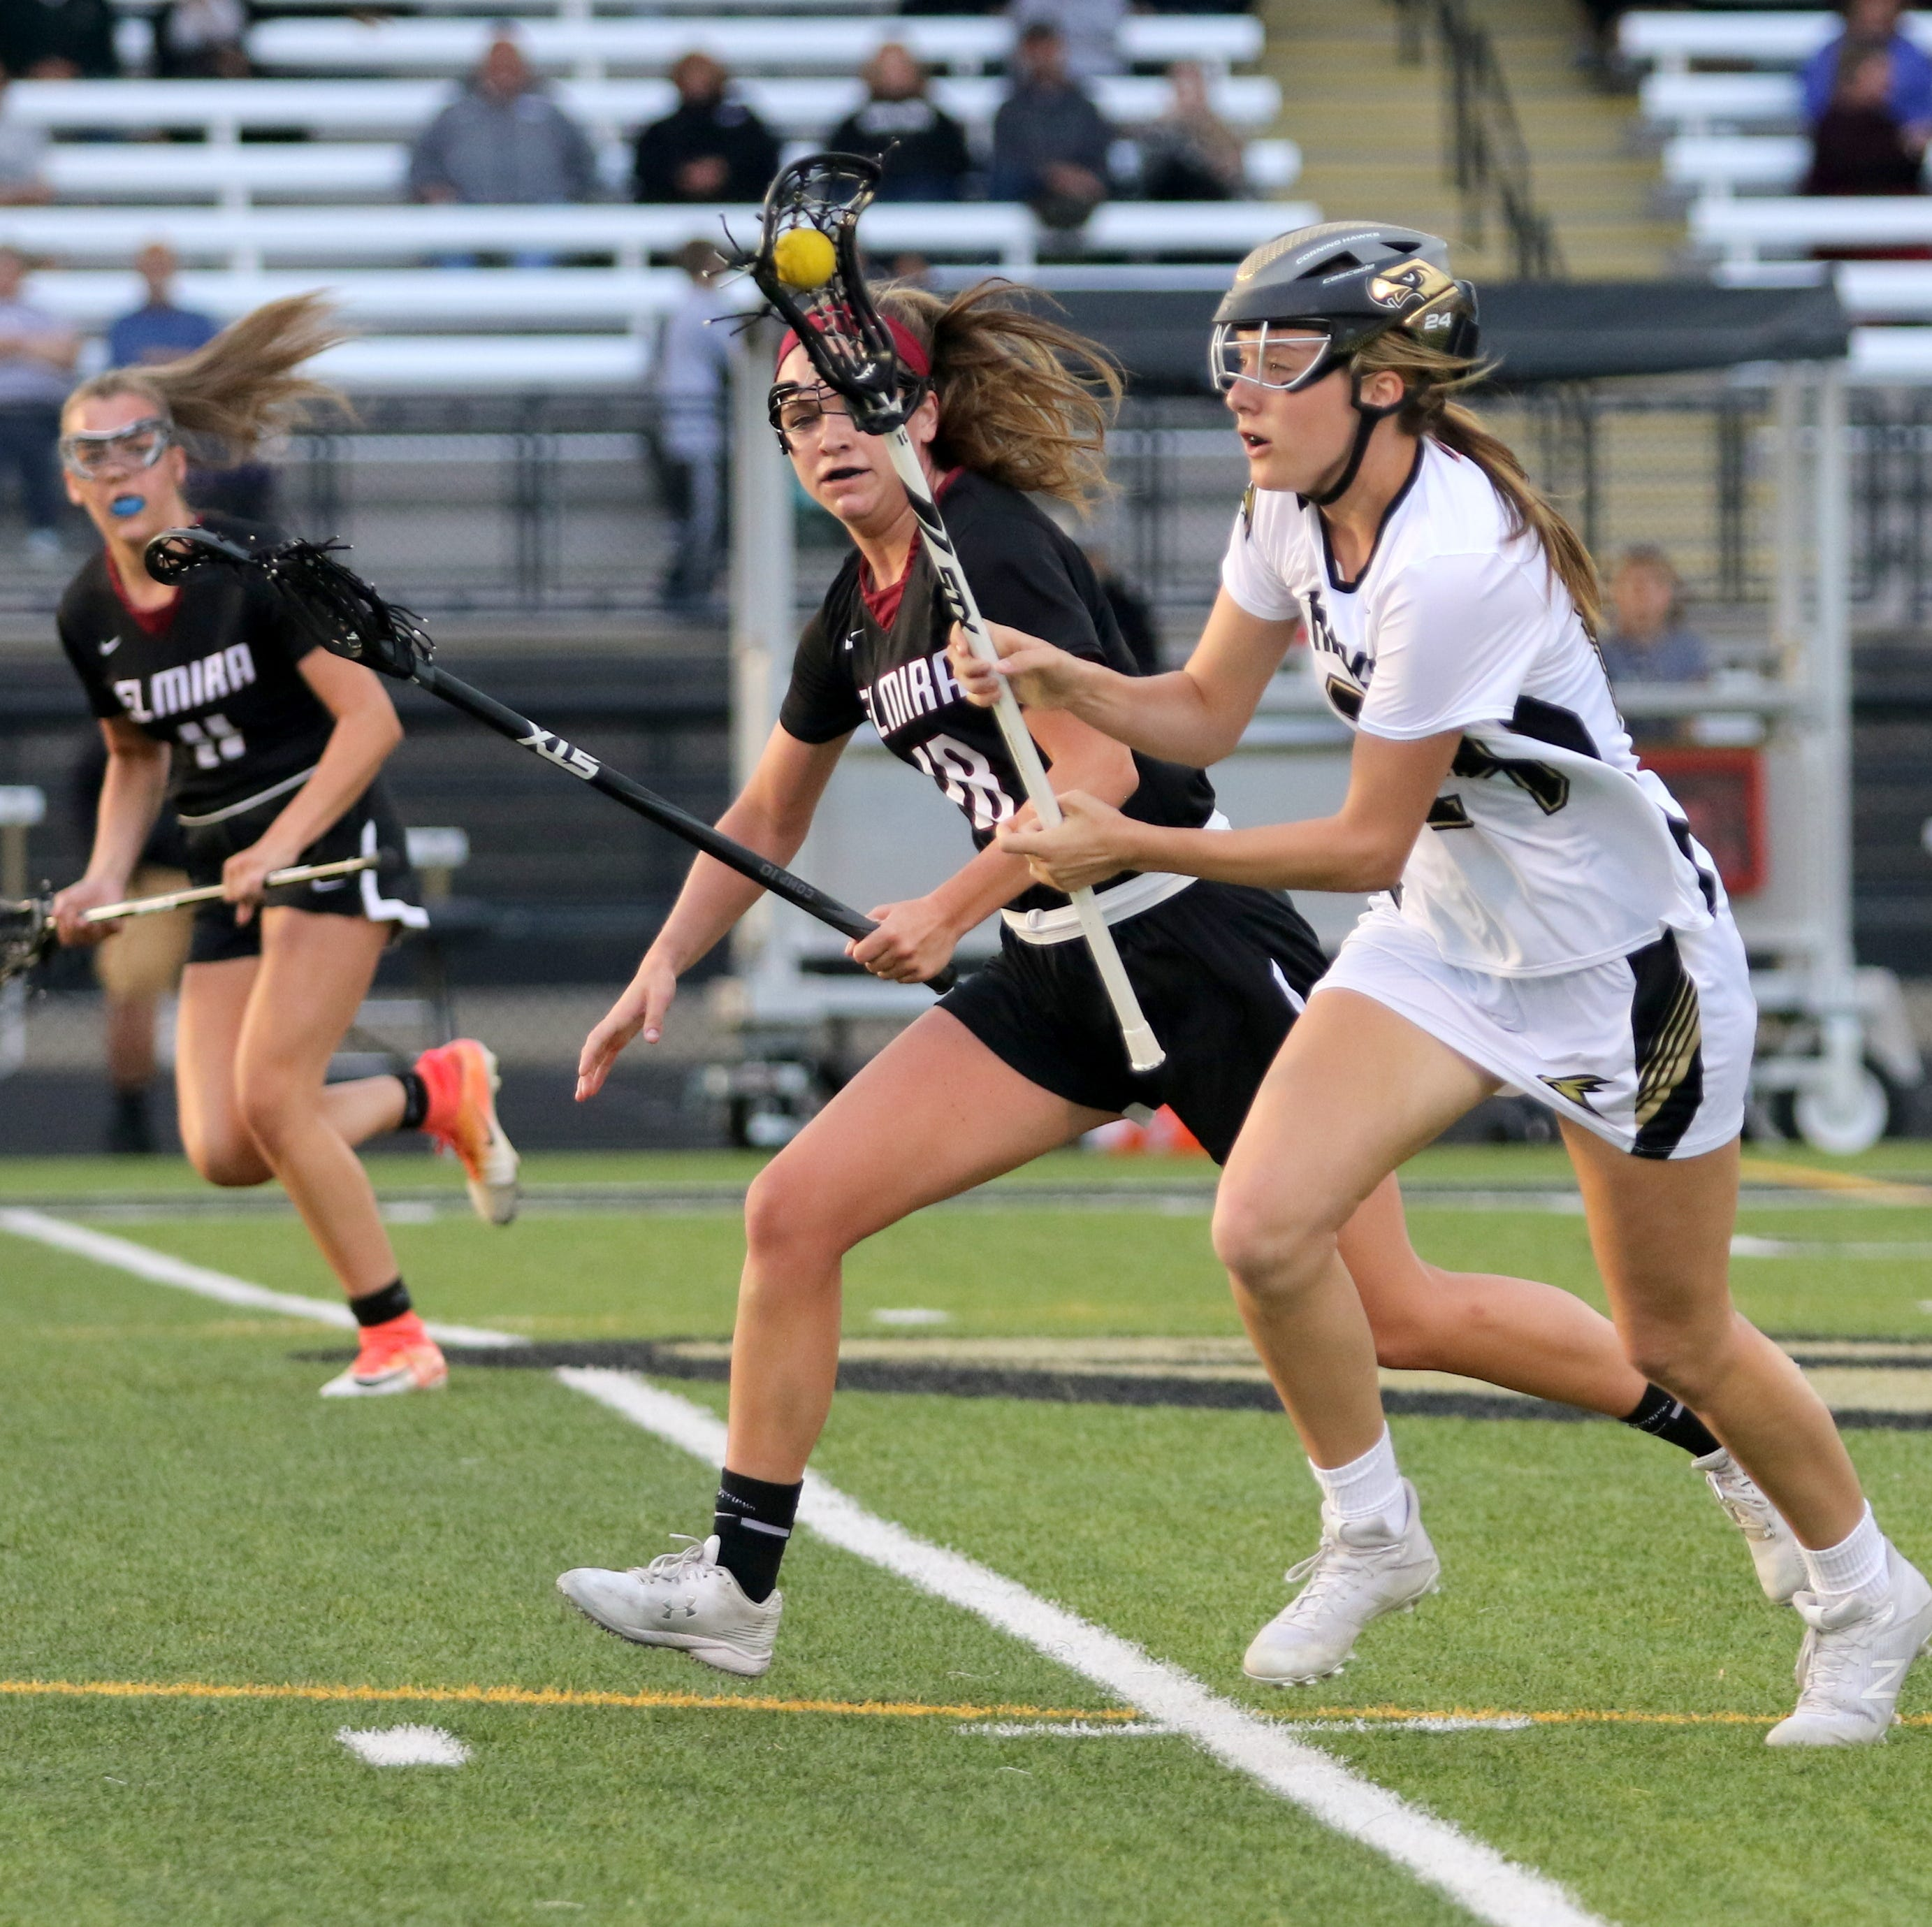 High school scores for Monday, May 20: See how your favorite Section 4 team performed